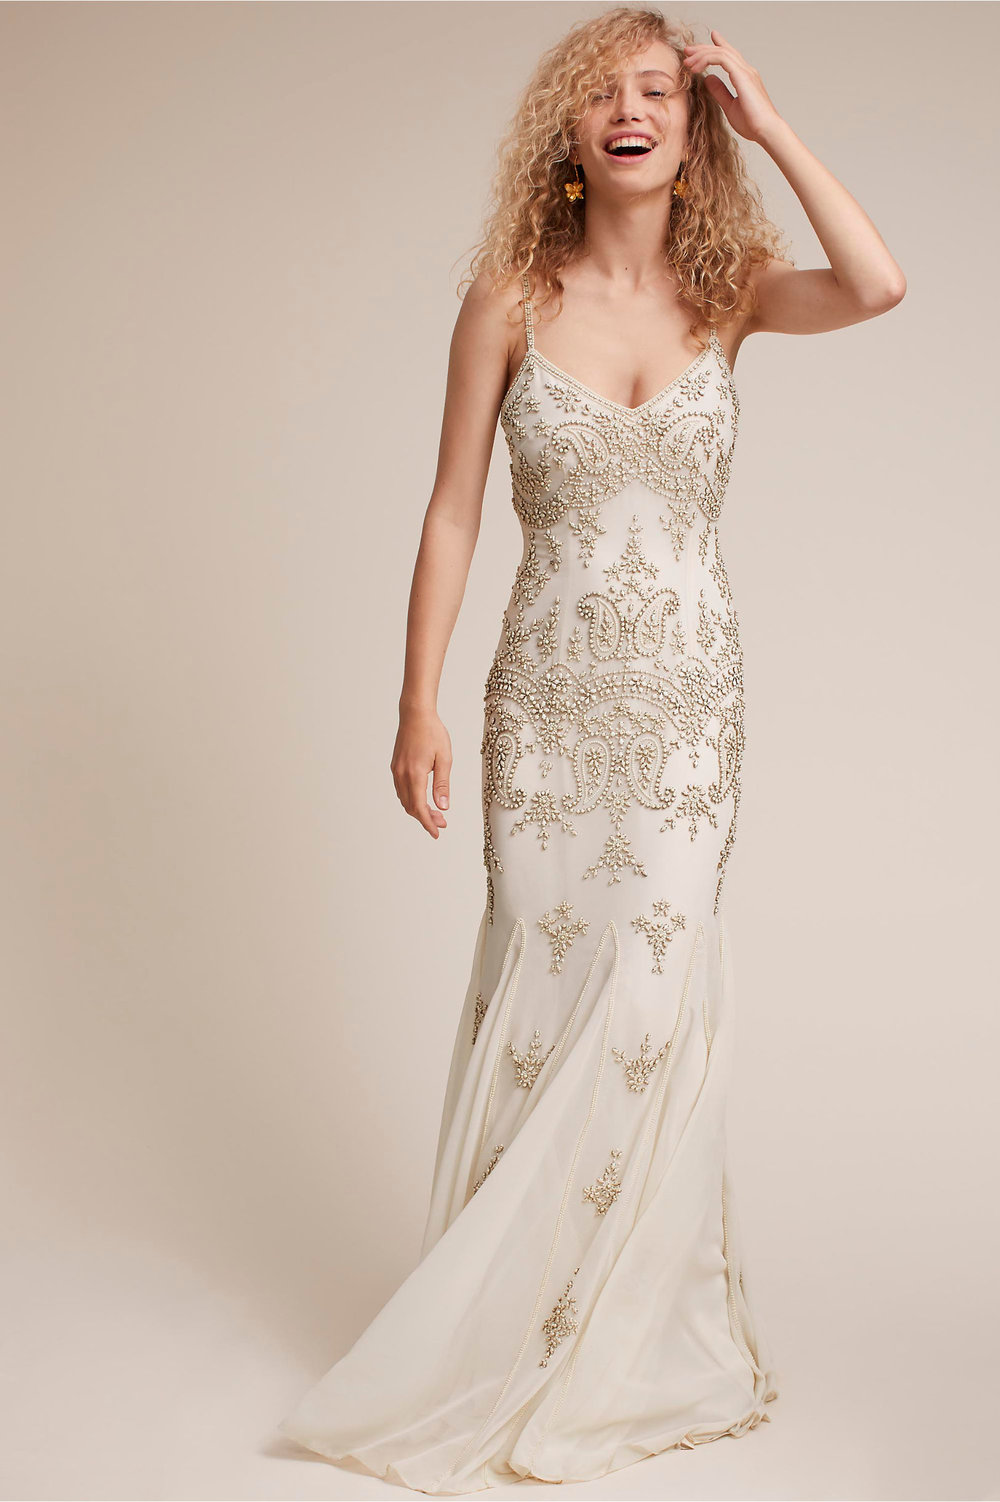 deco dreams gown - $800.00